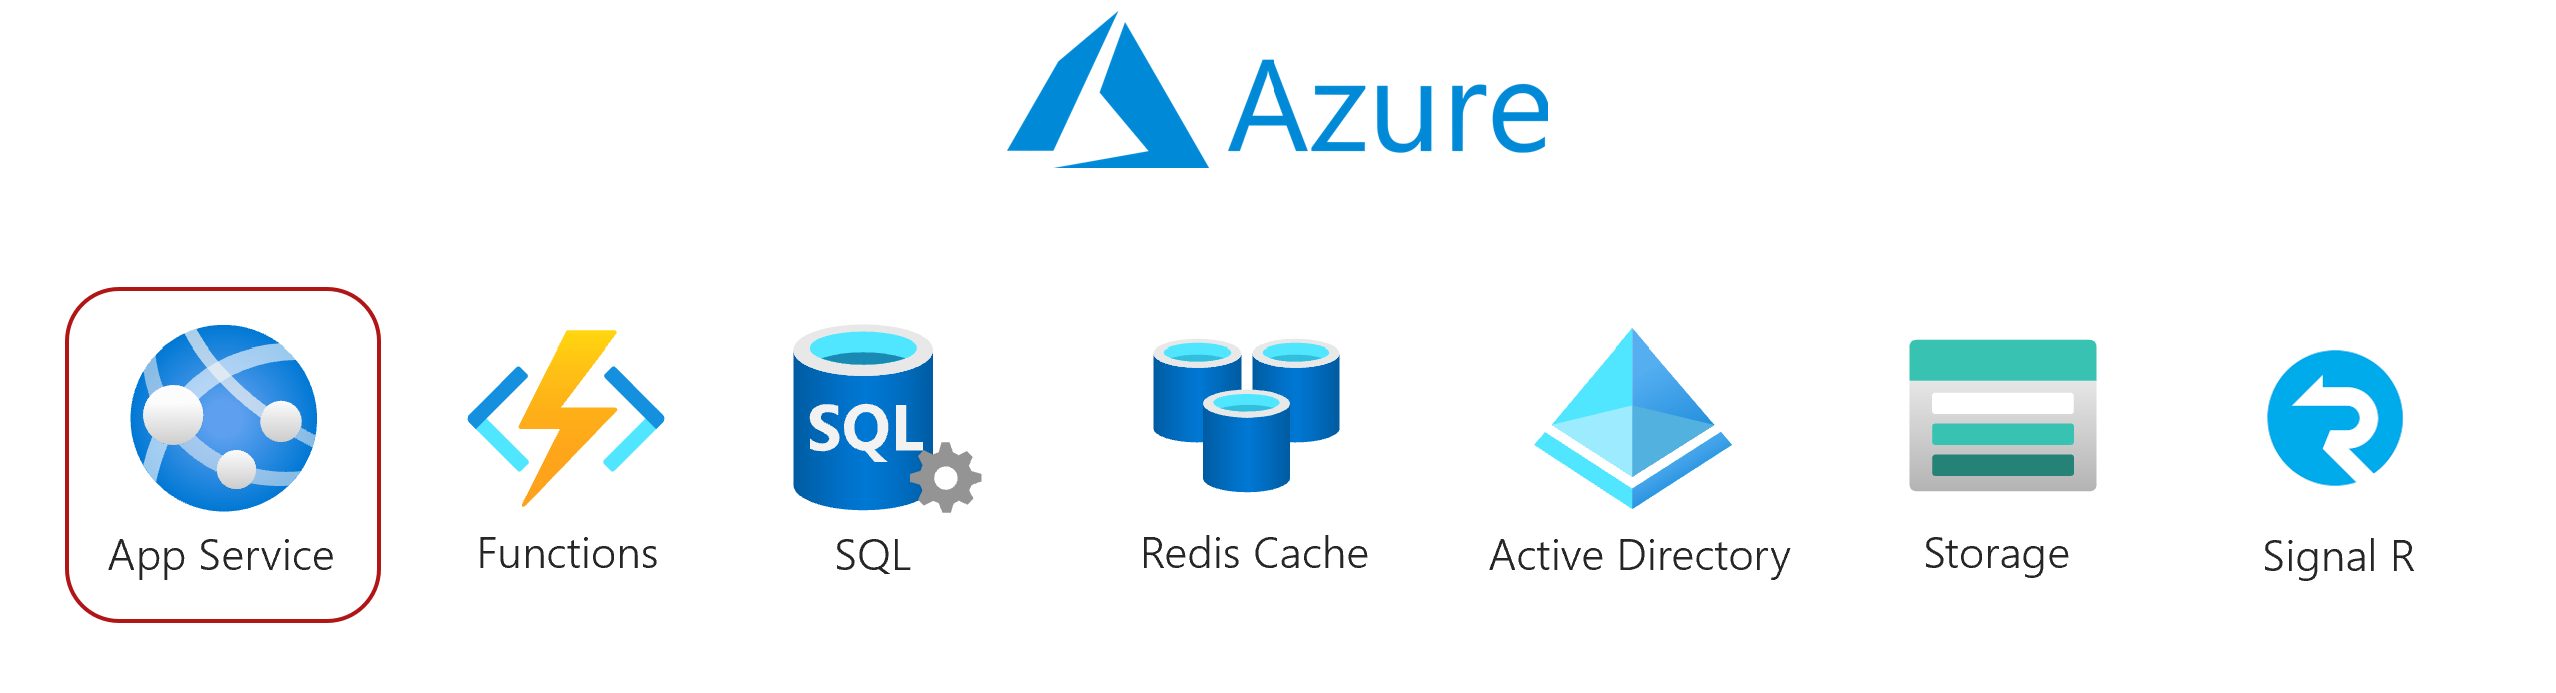 Azure Services to be used